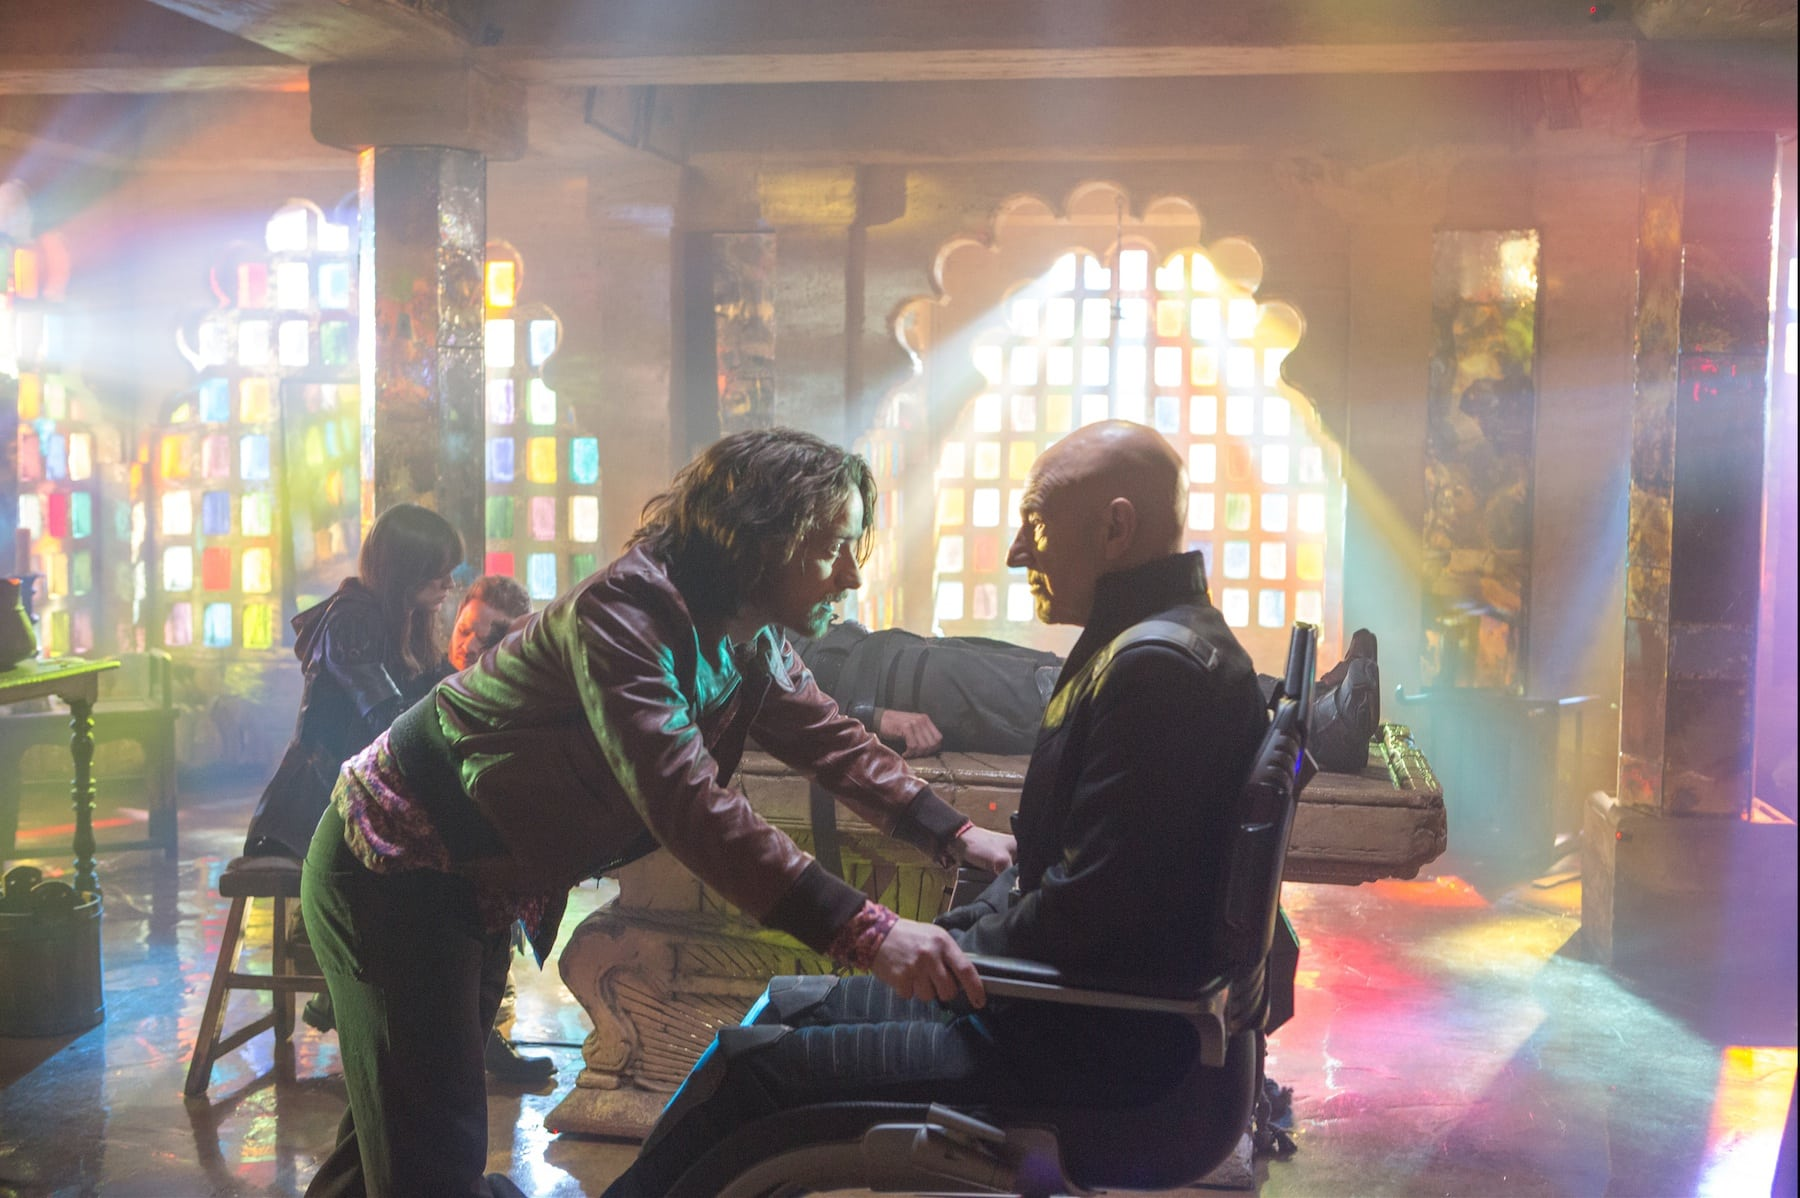 X-Men: First Class Professor Xavier James McAvoy human portrayal with nuance, depth. also here's Patrick Stewart